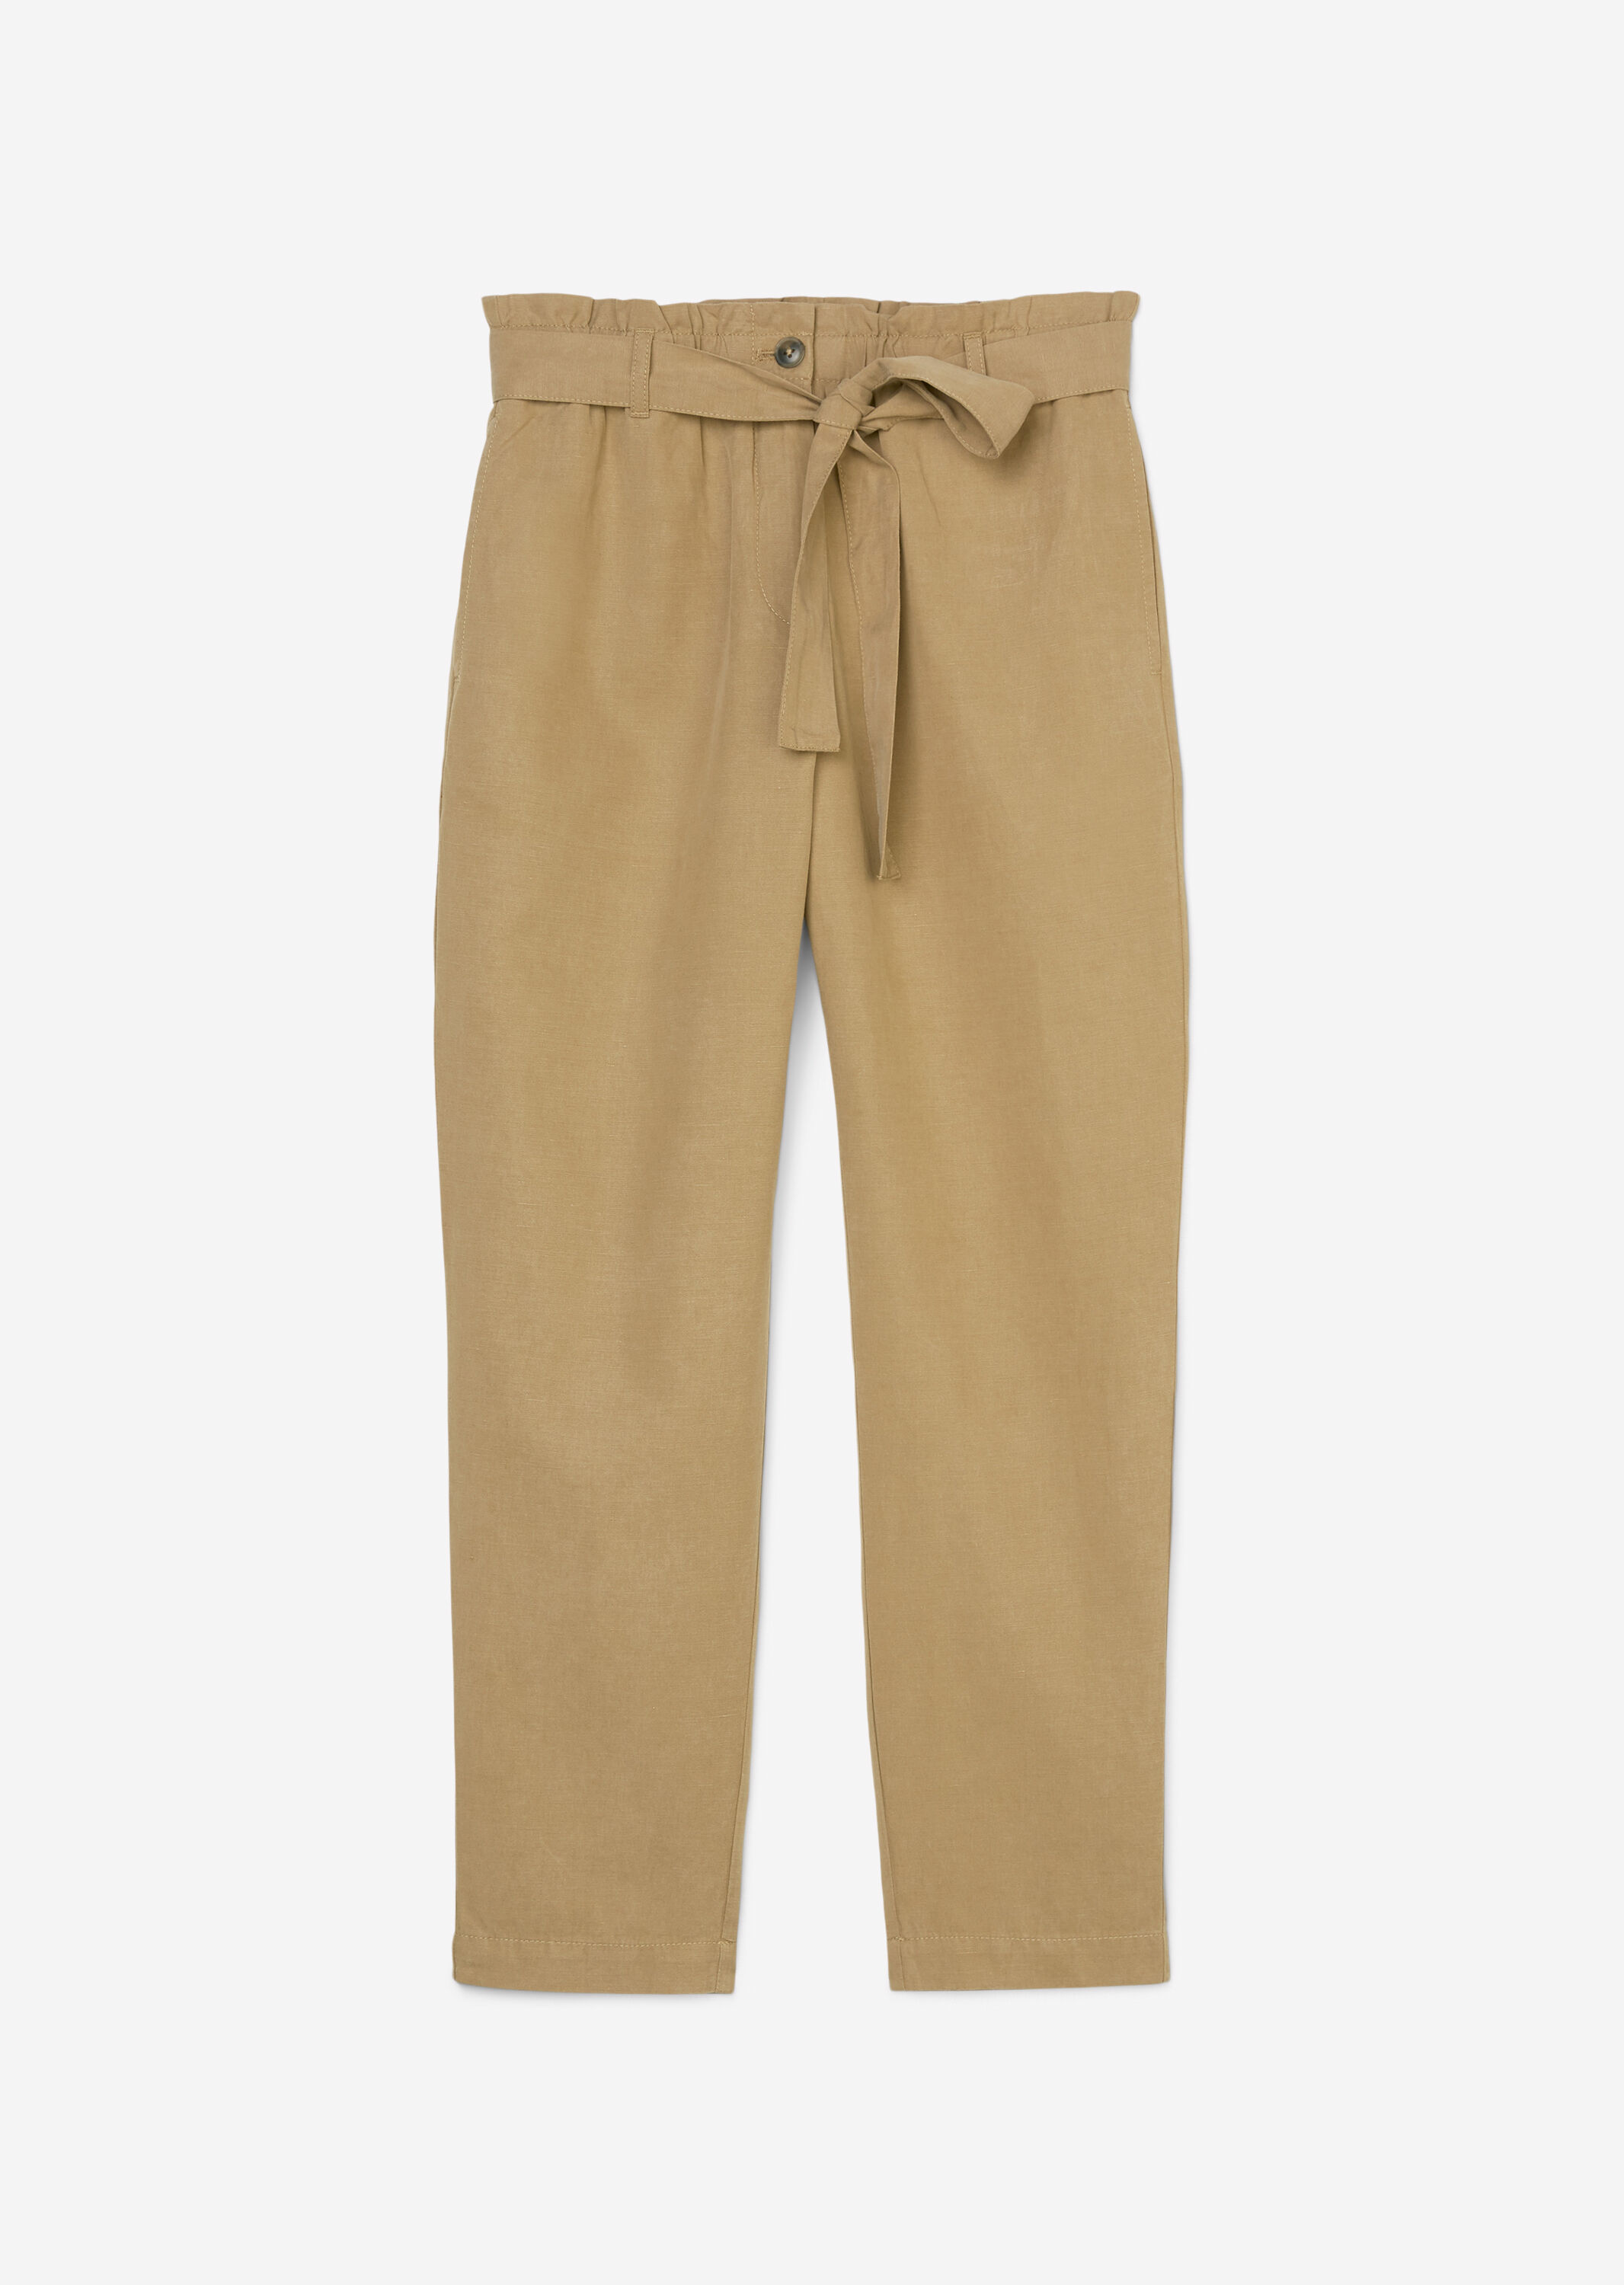 Marc O' Polo Paperbag-Pants beige